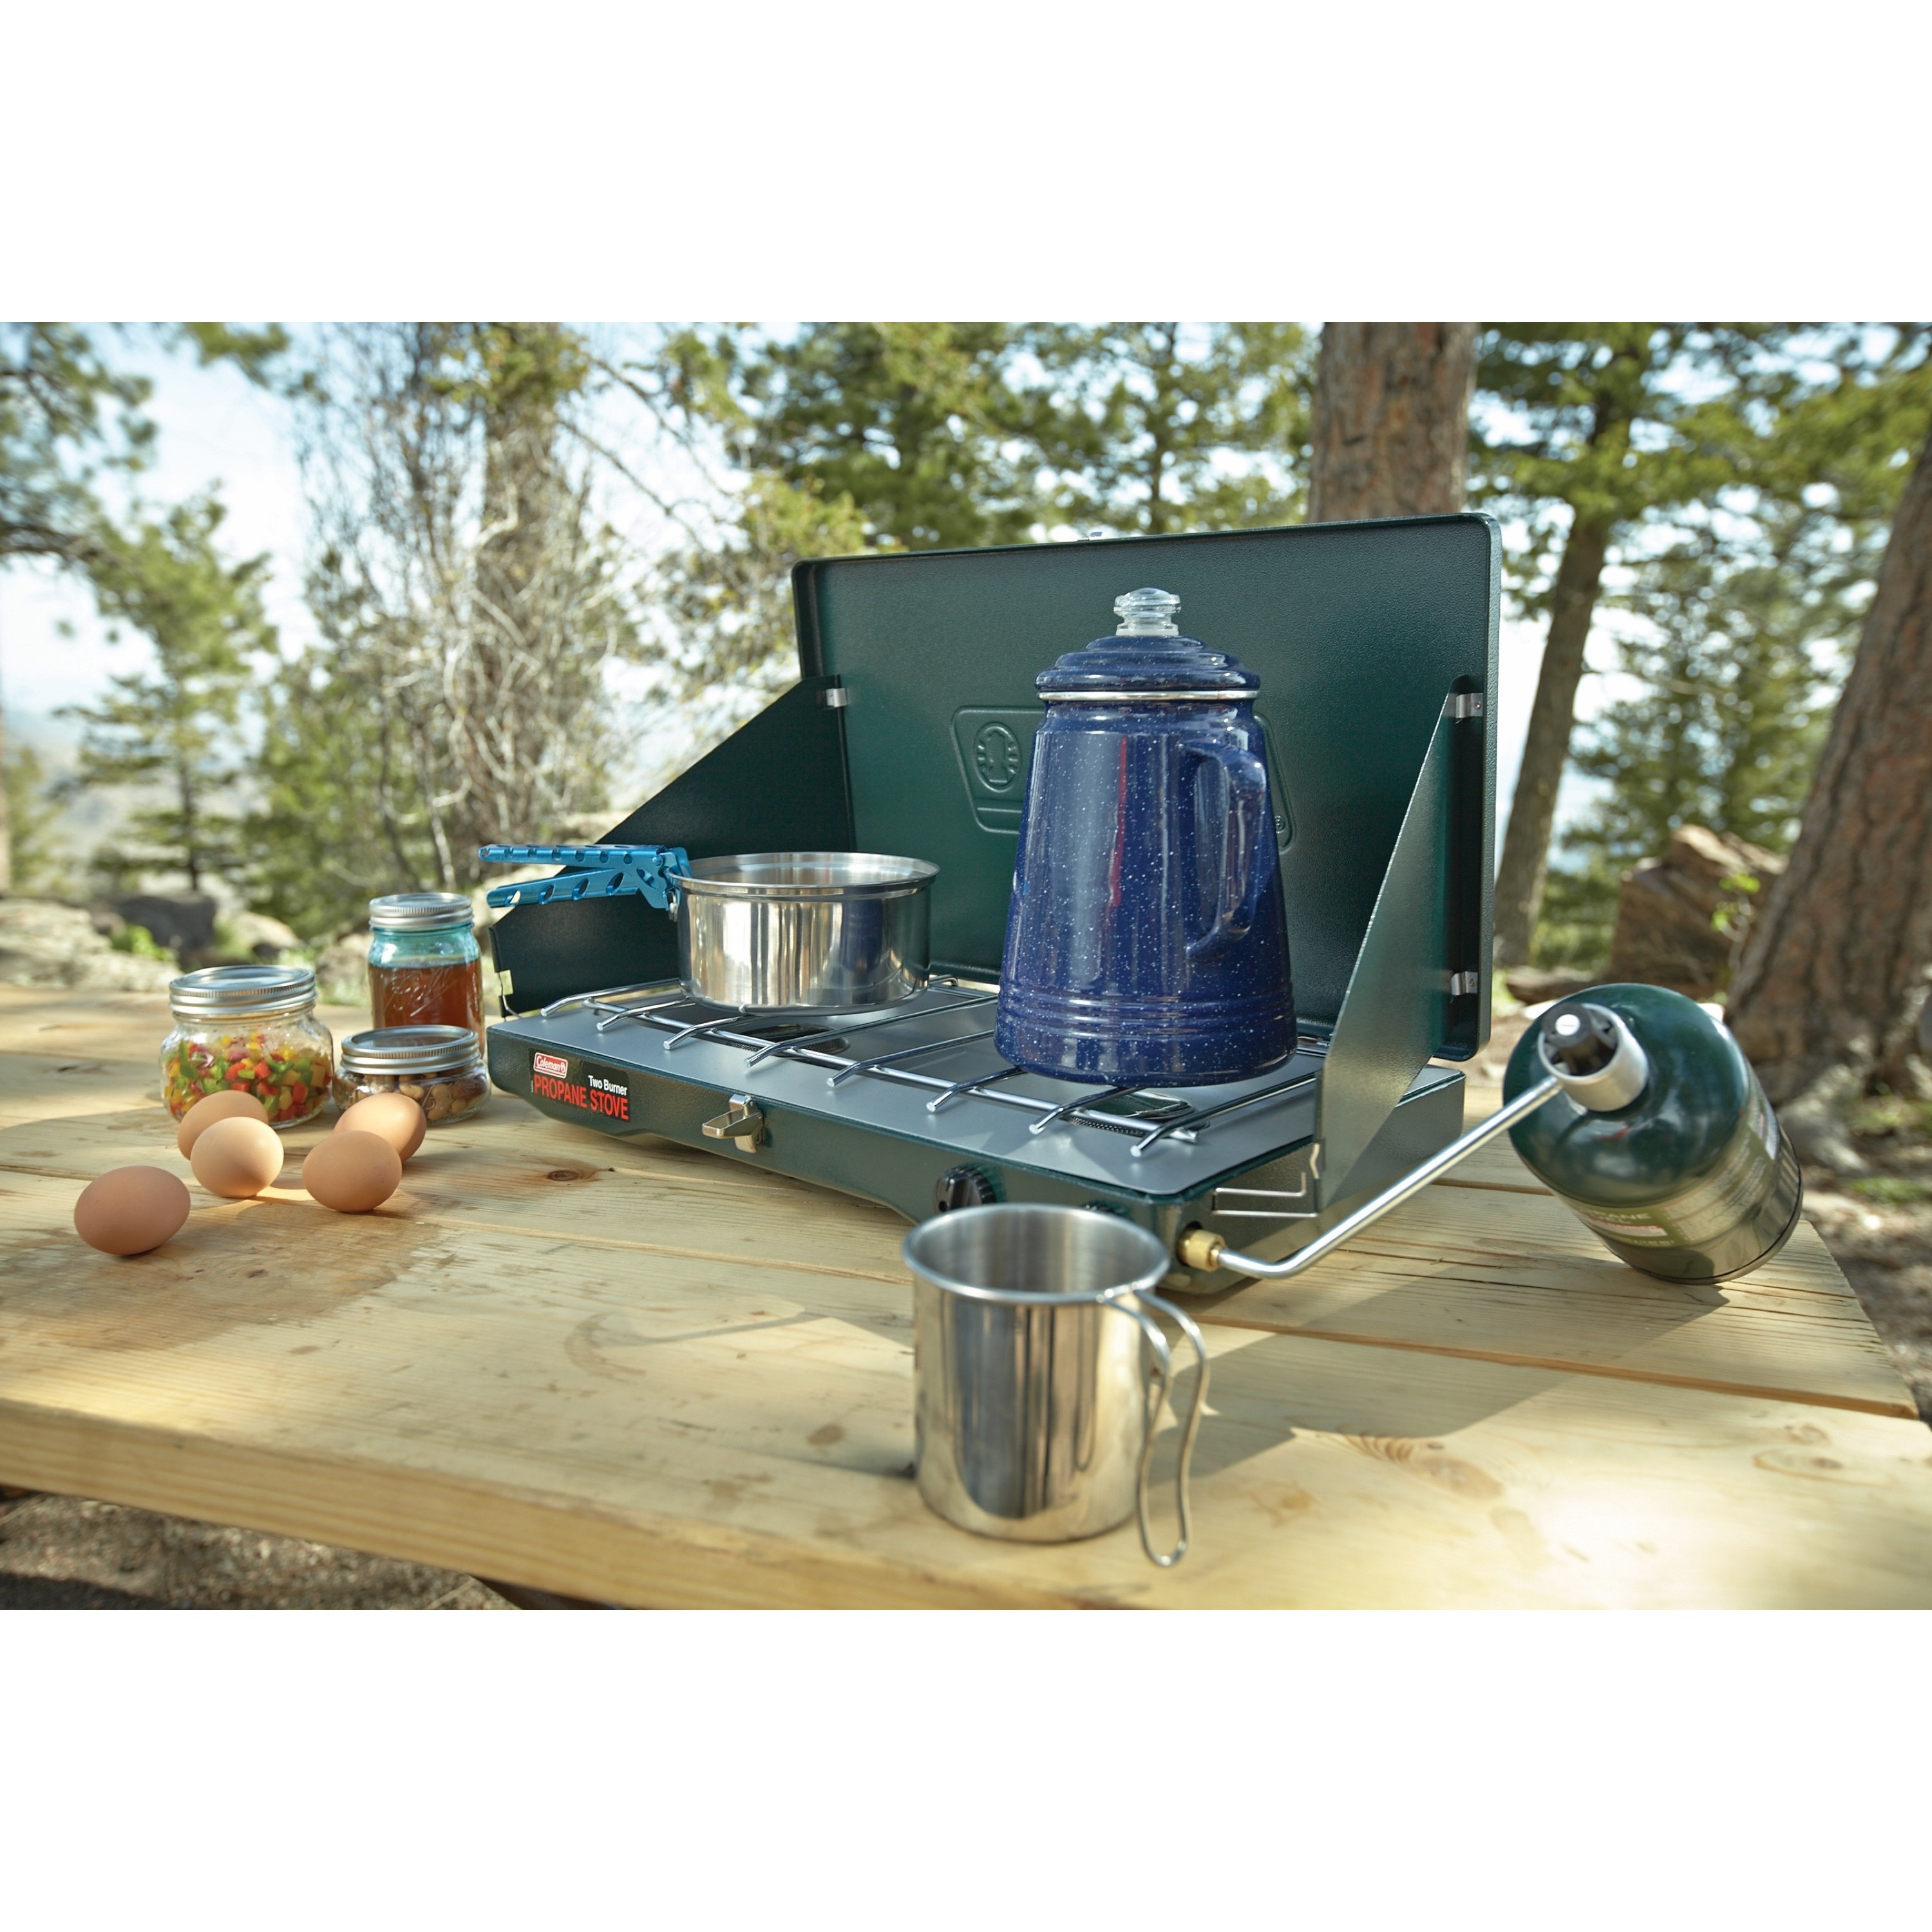 Coleman Gas Camping StoveClassic Propane Stove 2 Burner For Summer BBQ//Cook